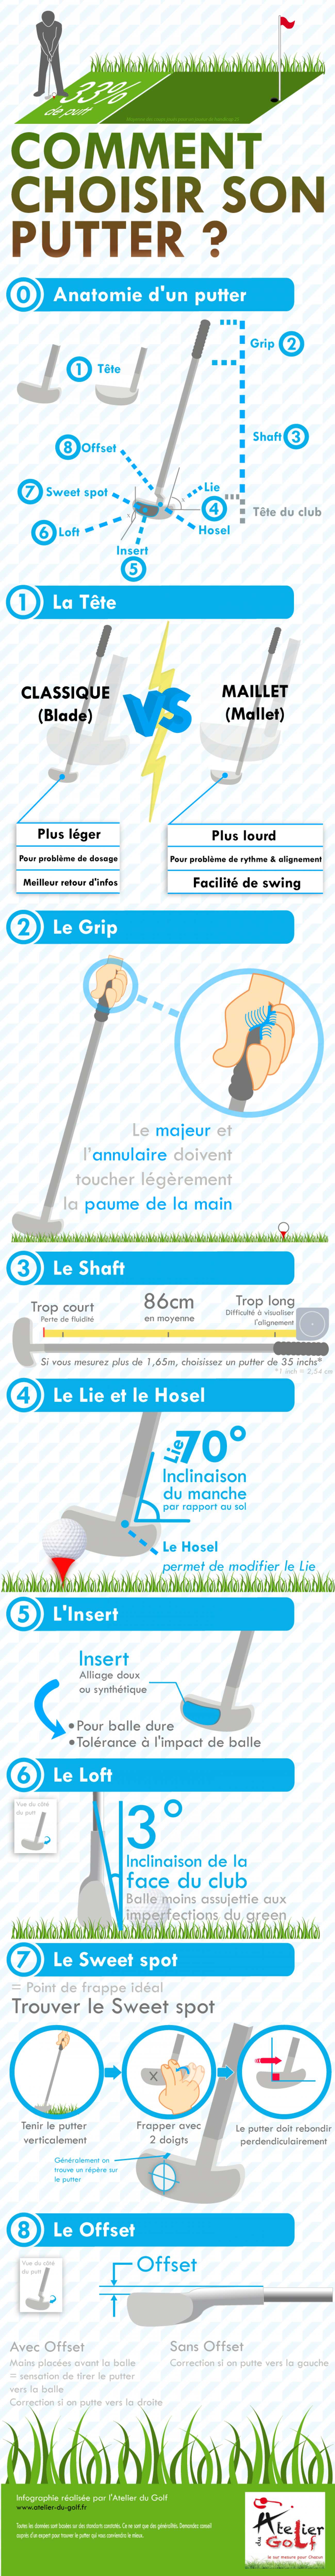 Comment Choisir Son Putter?  Infographic